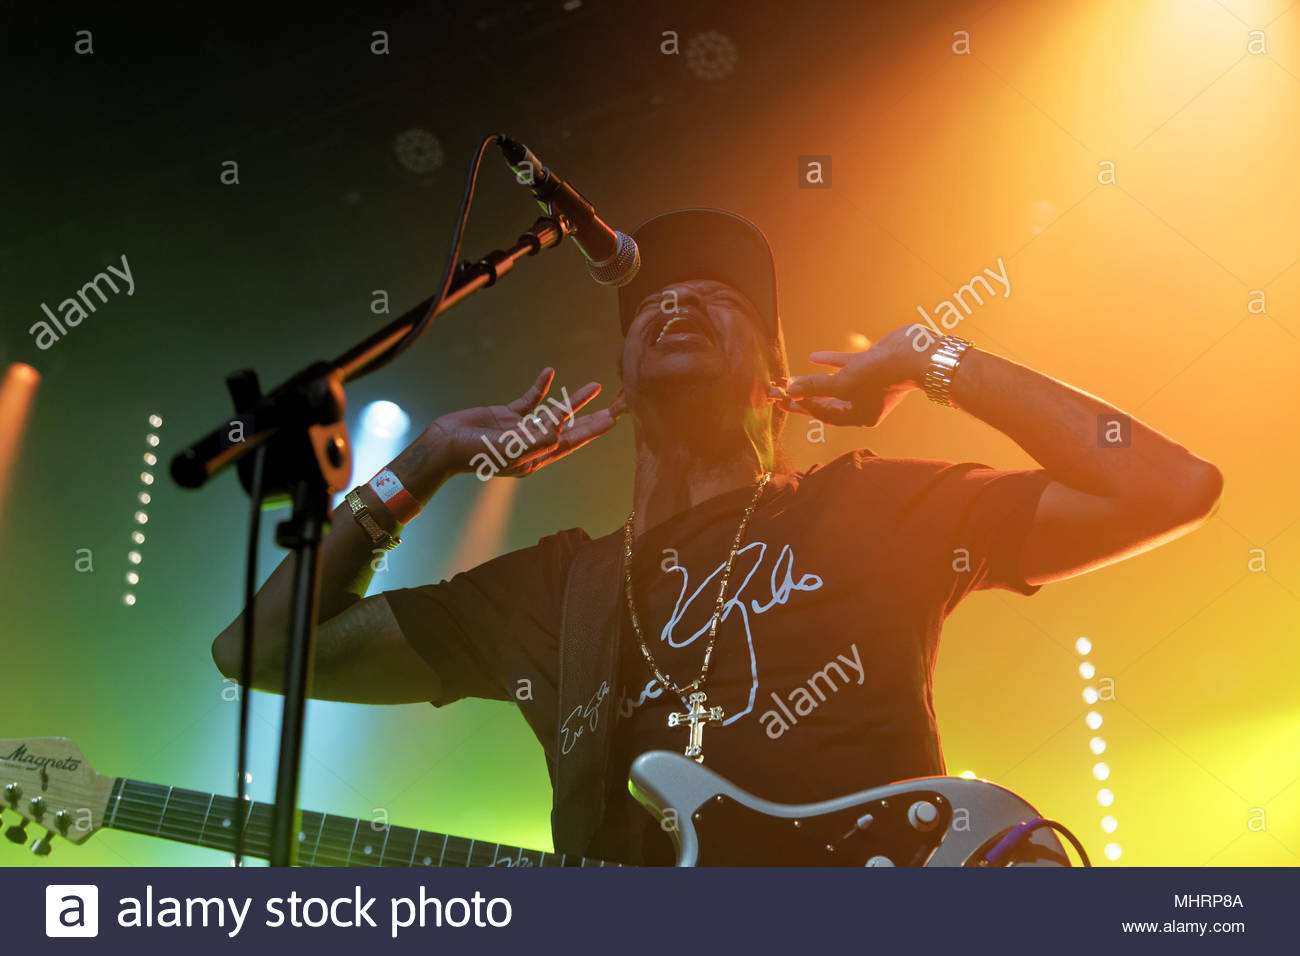 Guitarist Eric Stock Photos & Guitarist Eric Stock Images - Page 2 ...